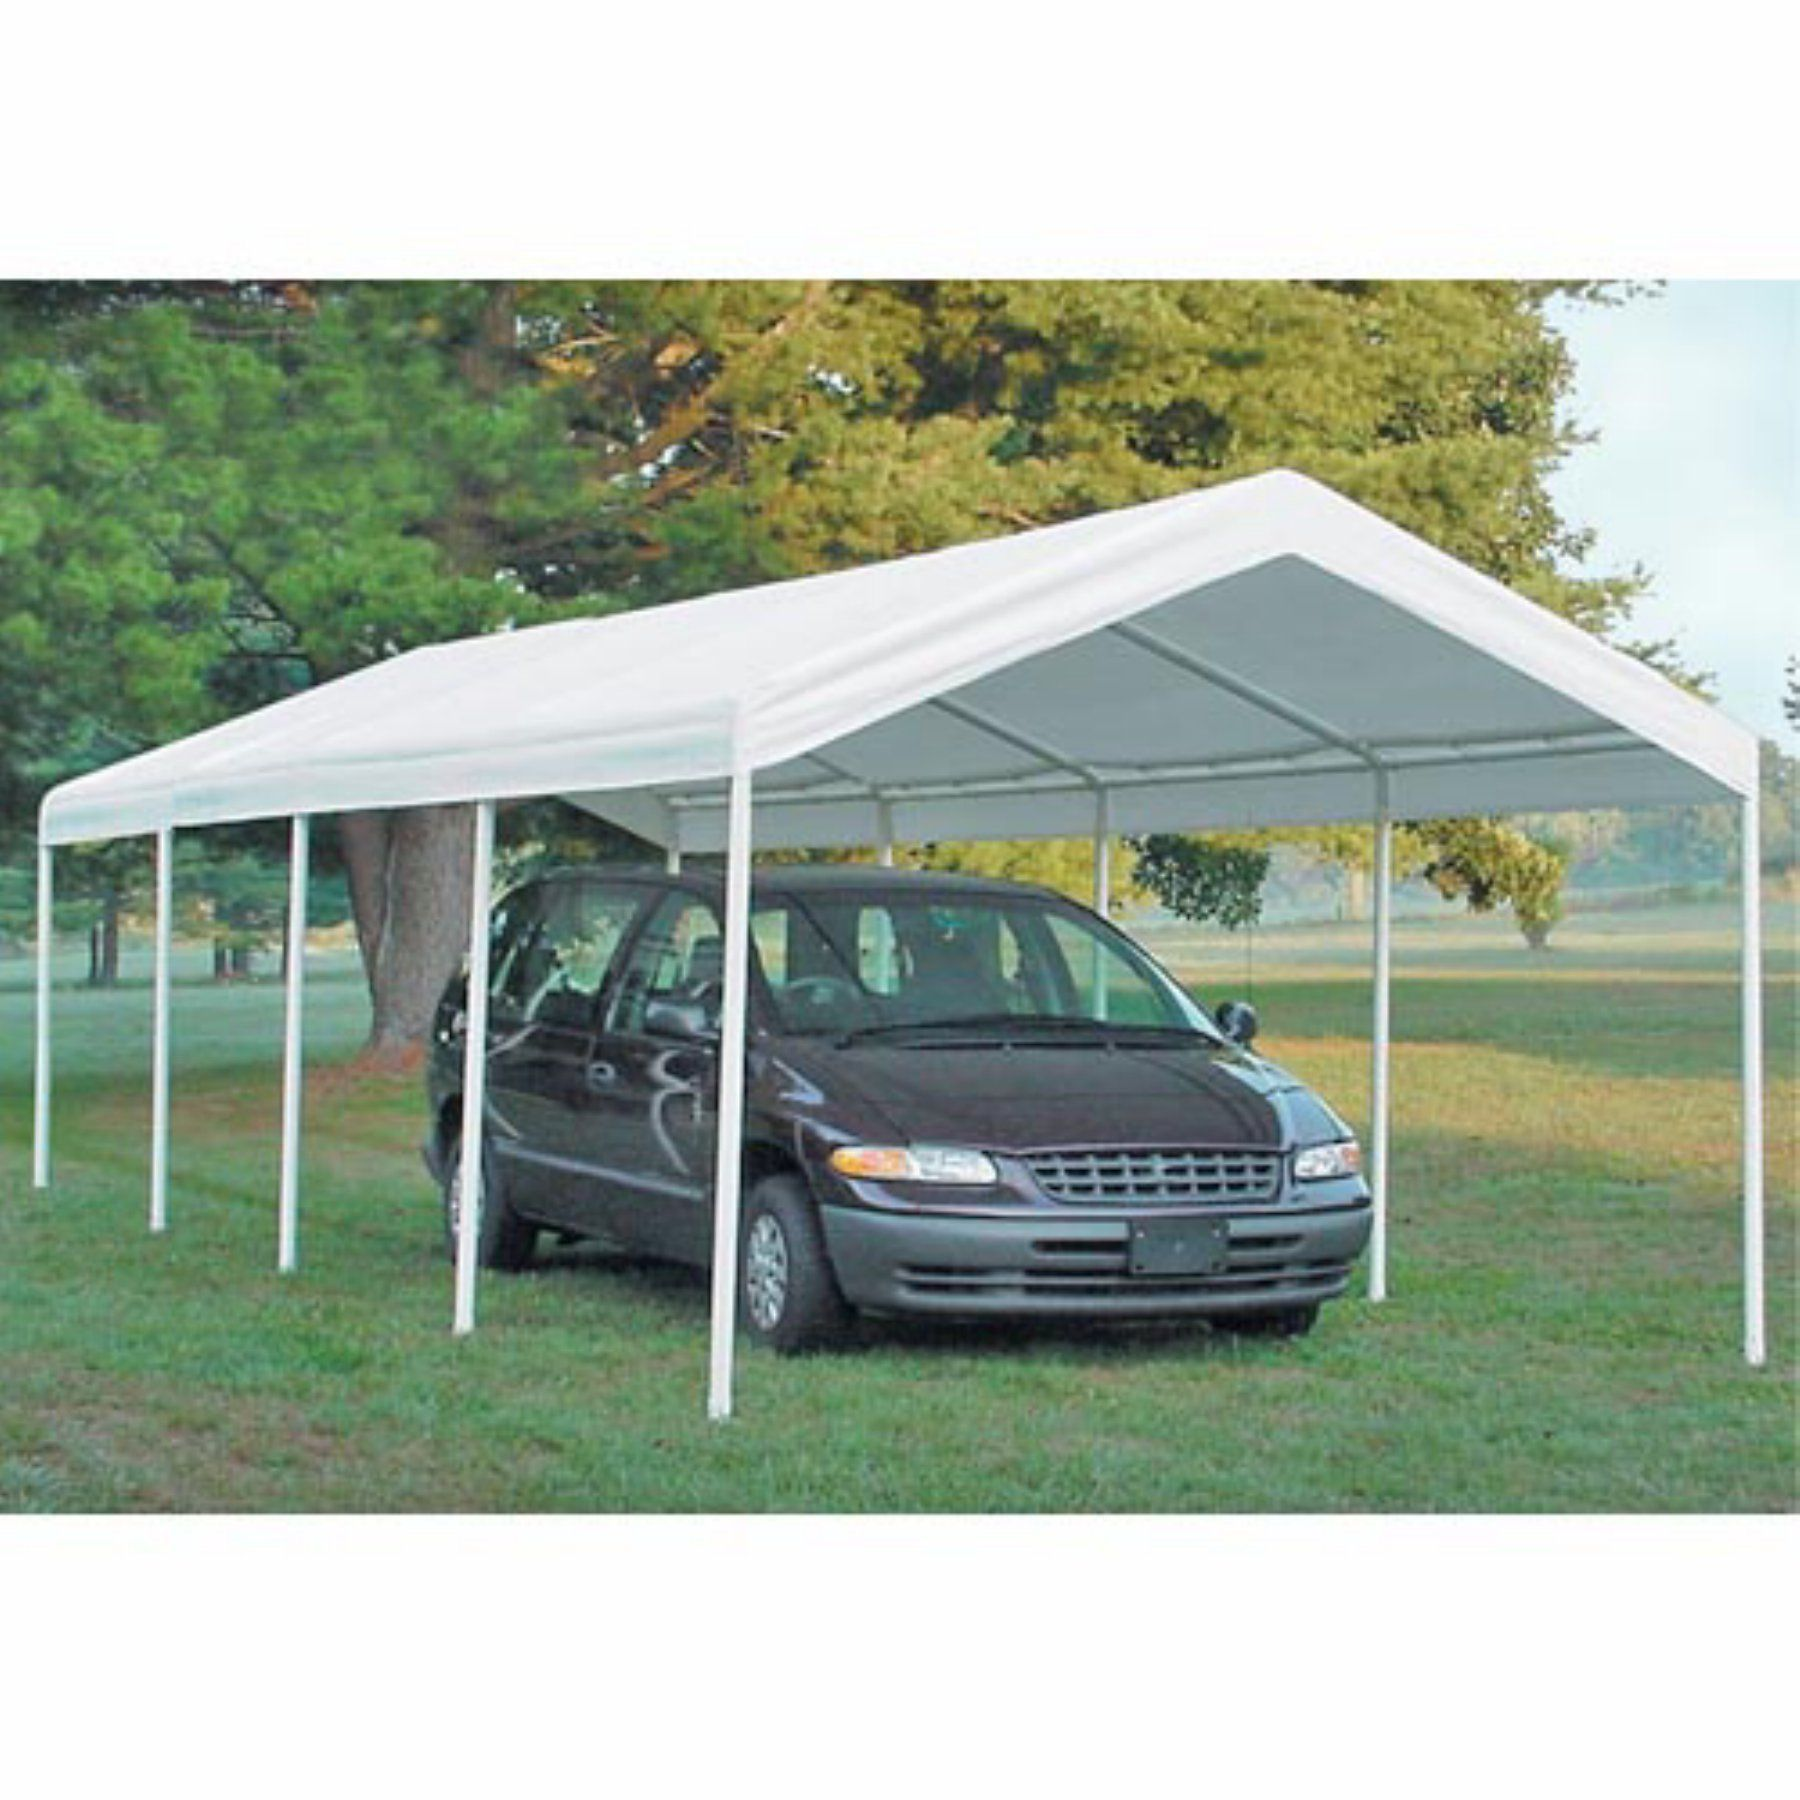 ShelterLogic 12 x 26 ft. Commercial Grade Canopy 25770